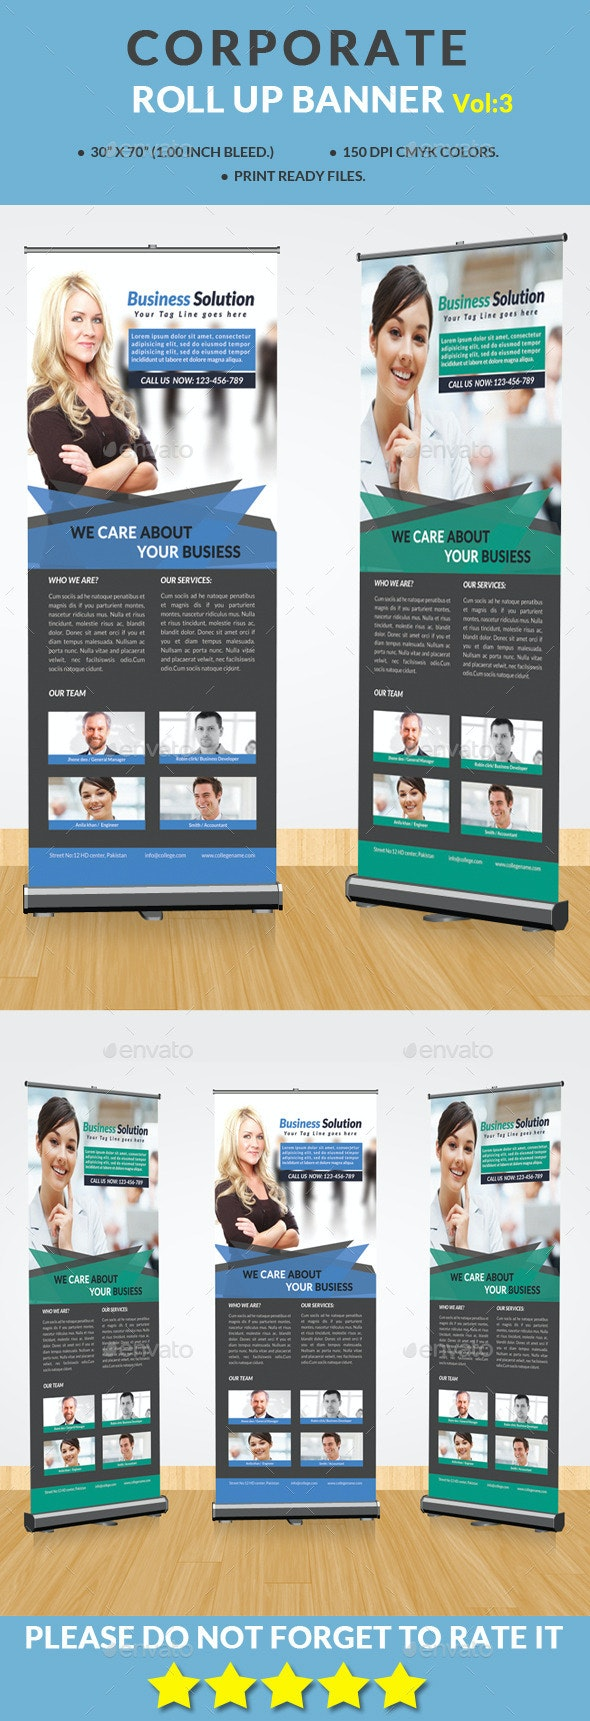 Corporate Roll-up Banner Vol:3